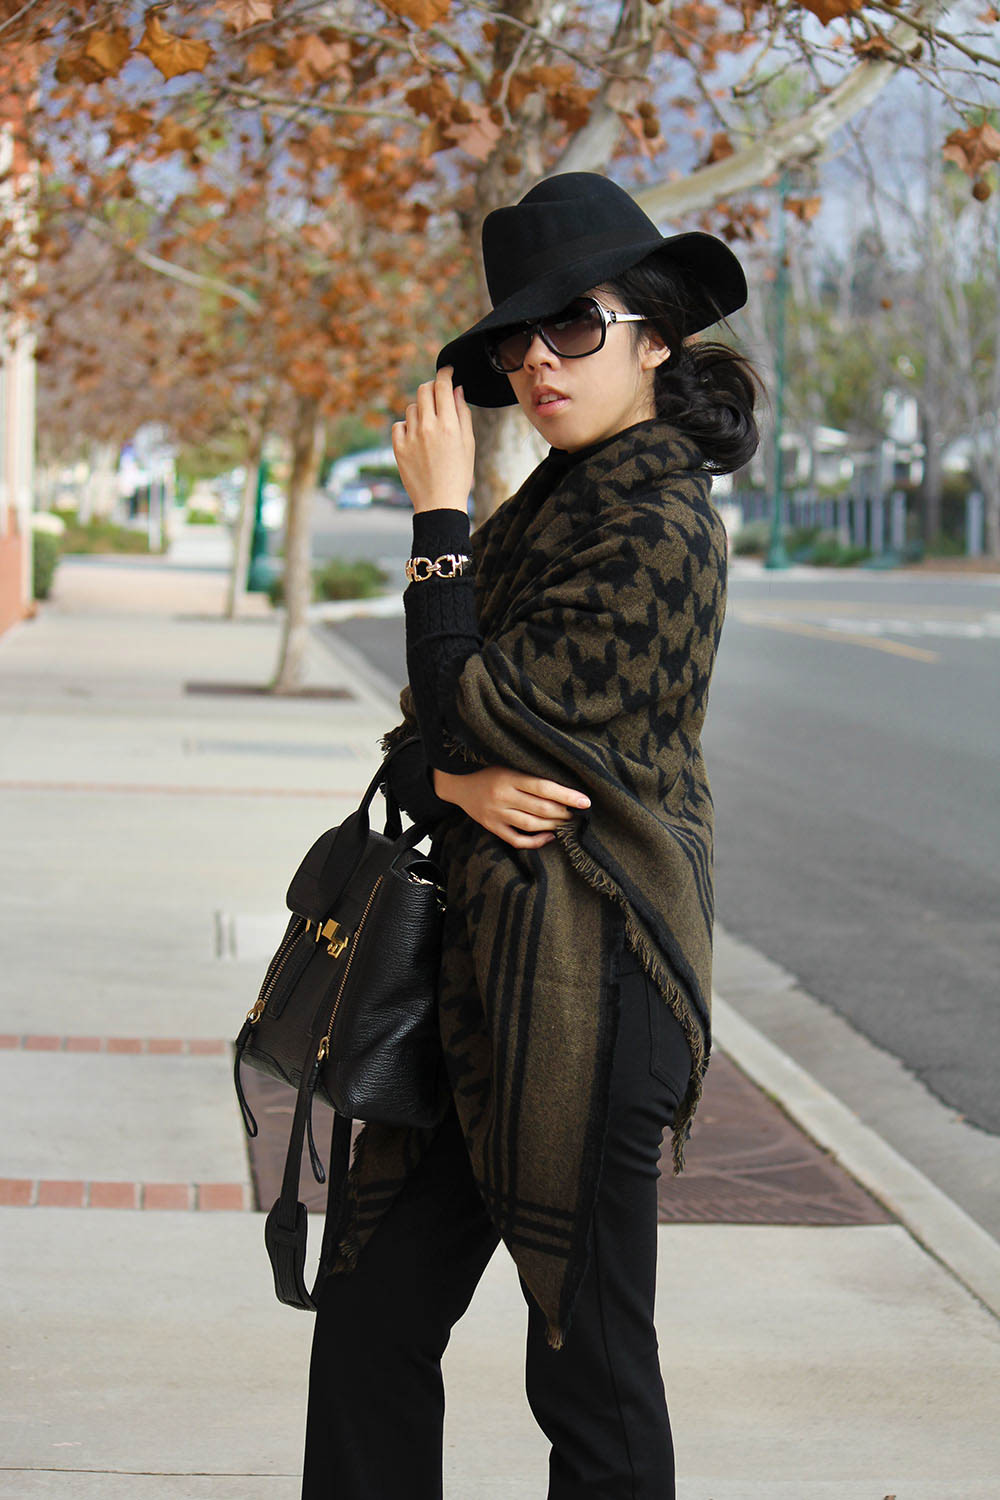 Adrienne Nguyen_Invictus_Black Flare Pants with Houndstooth Scarf